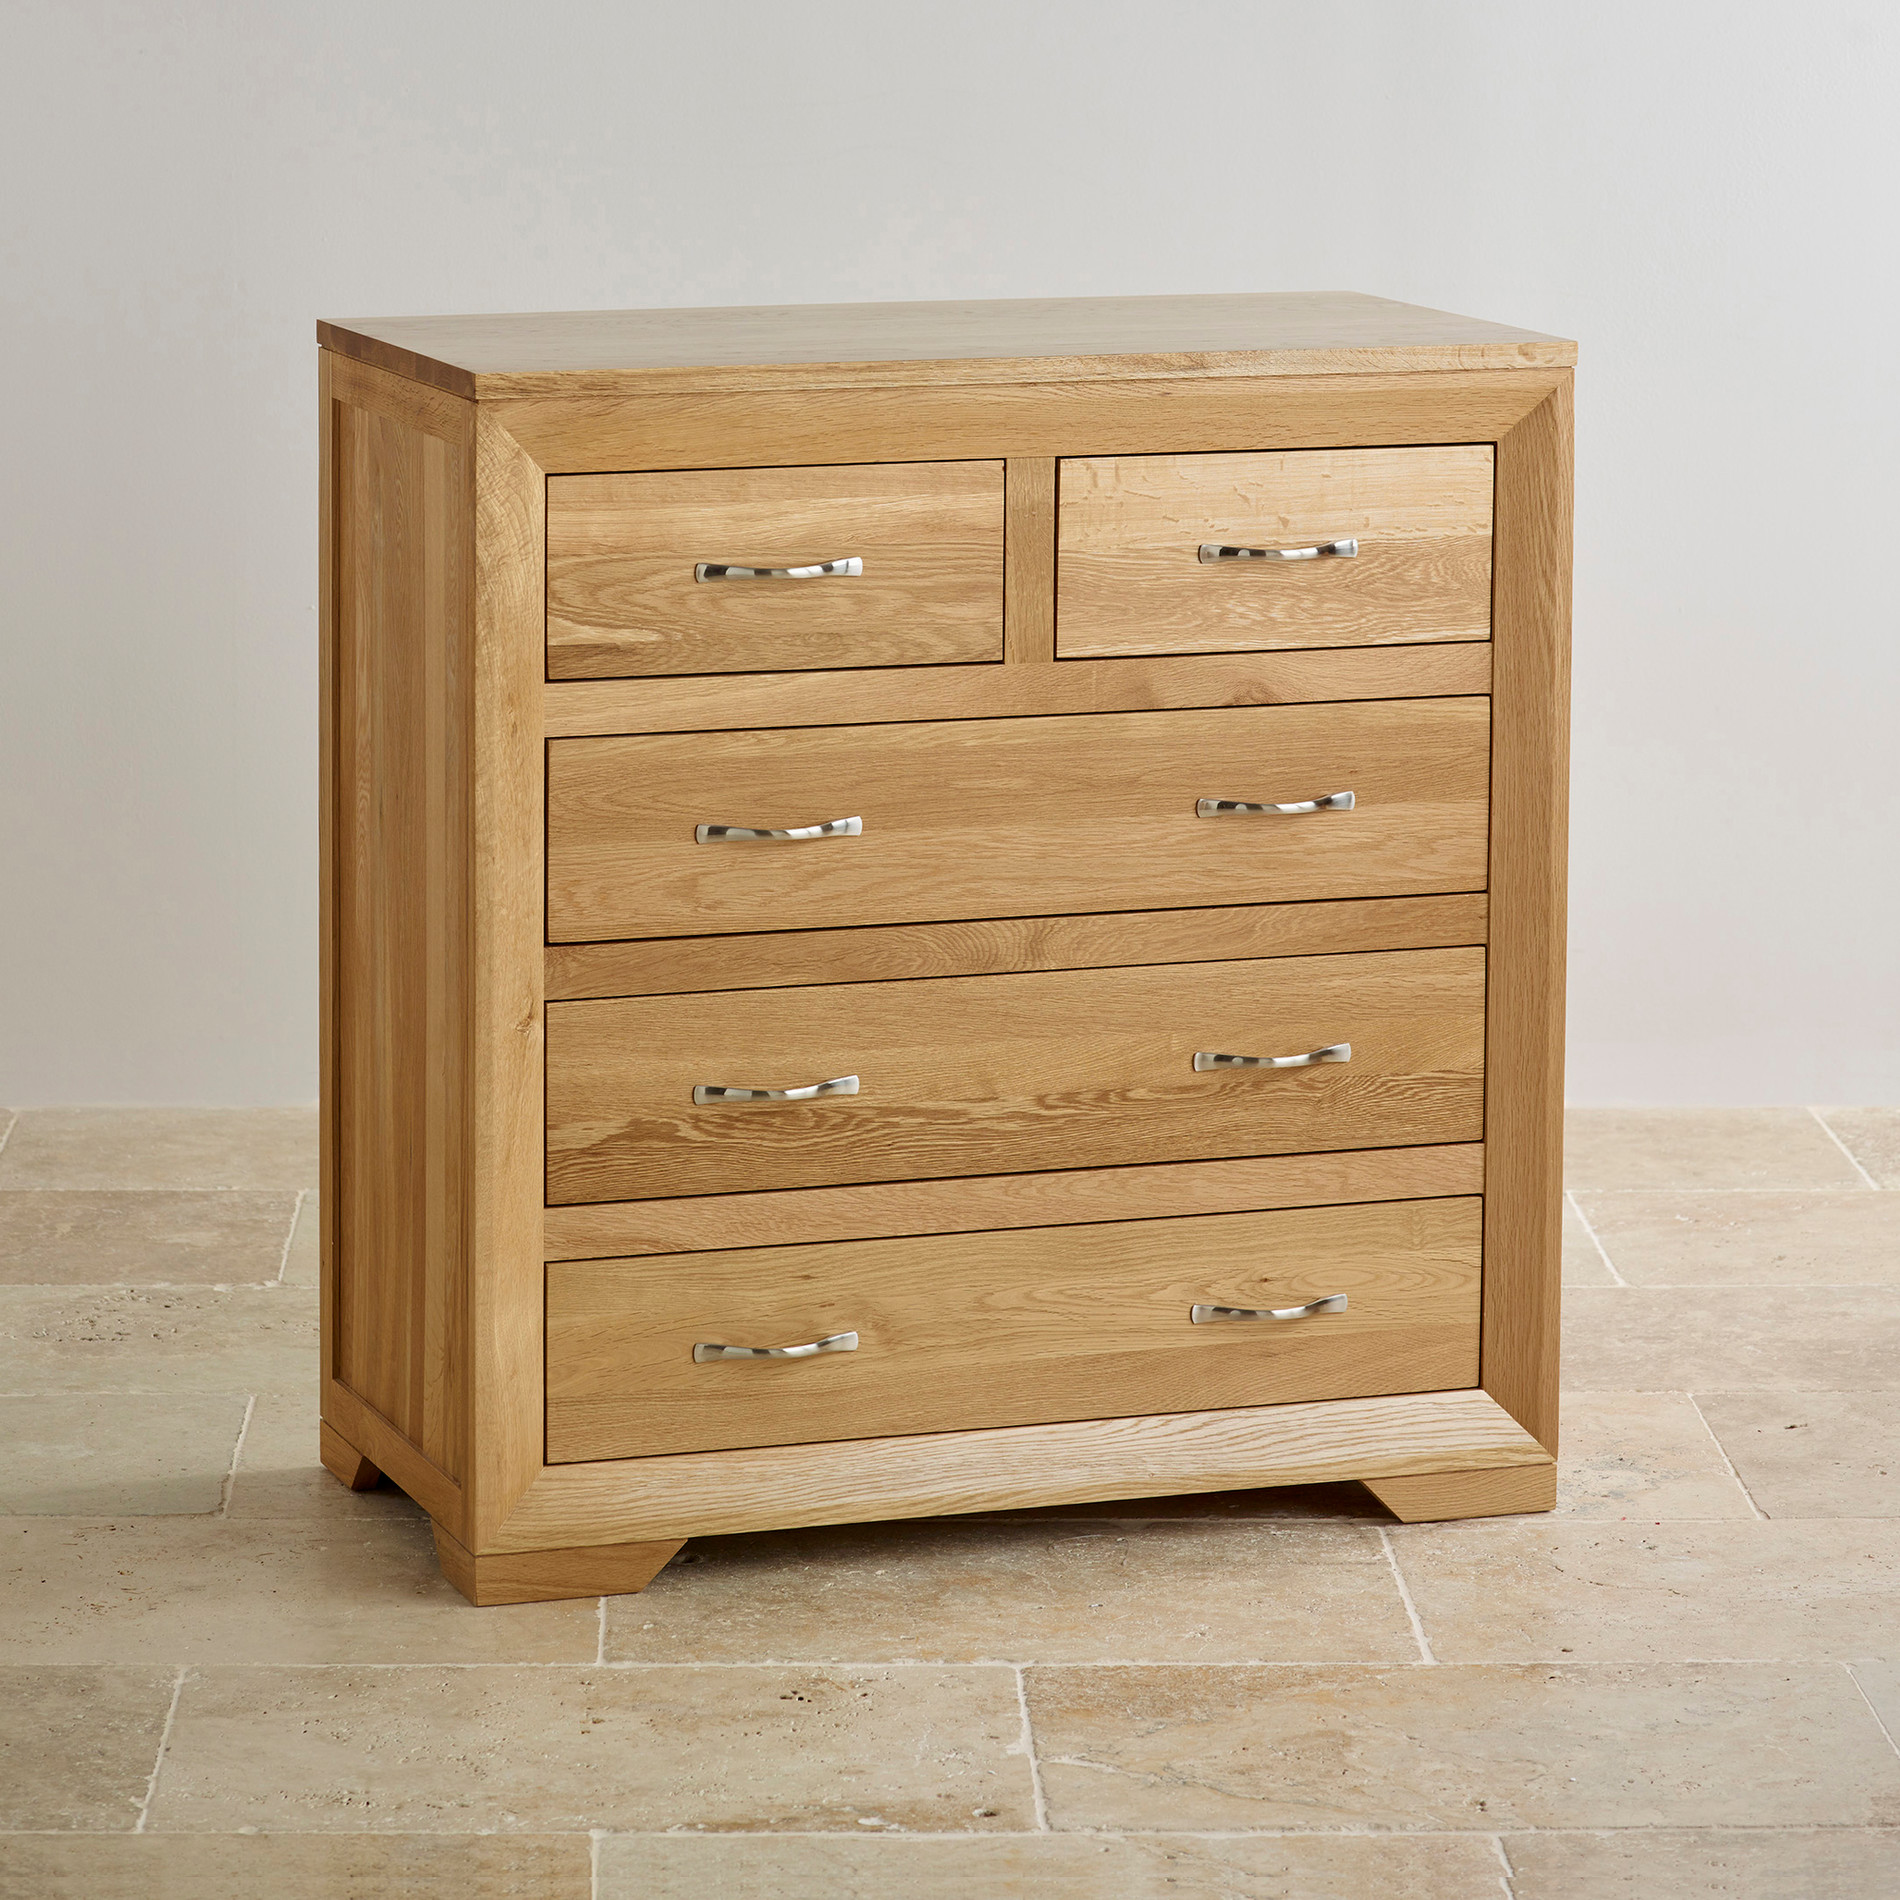 Bevel 5 drawer chest in natural solid oak oak furniture land for Solid oak furniture